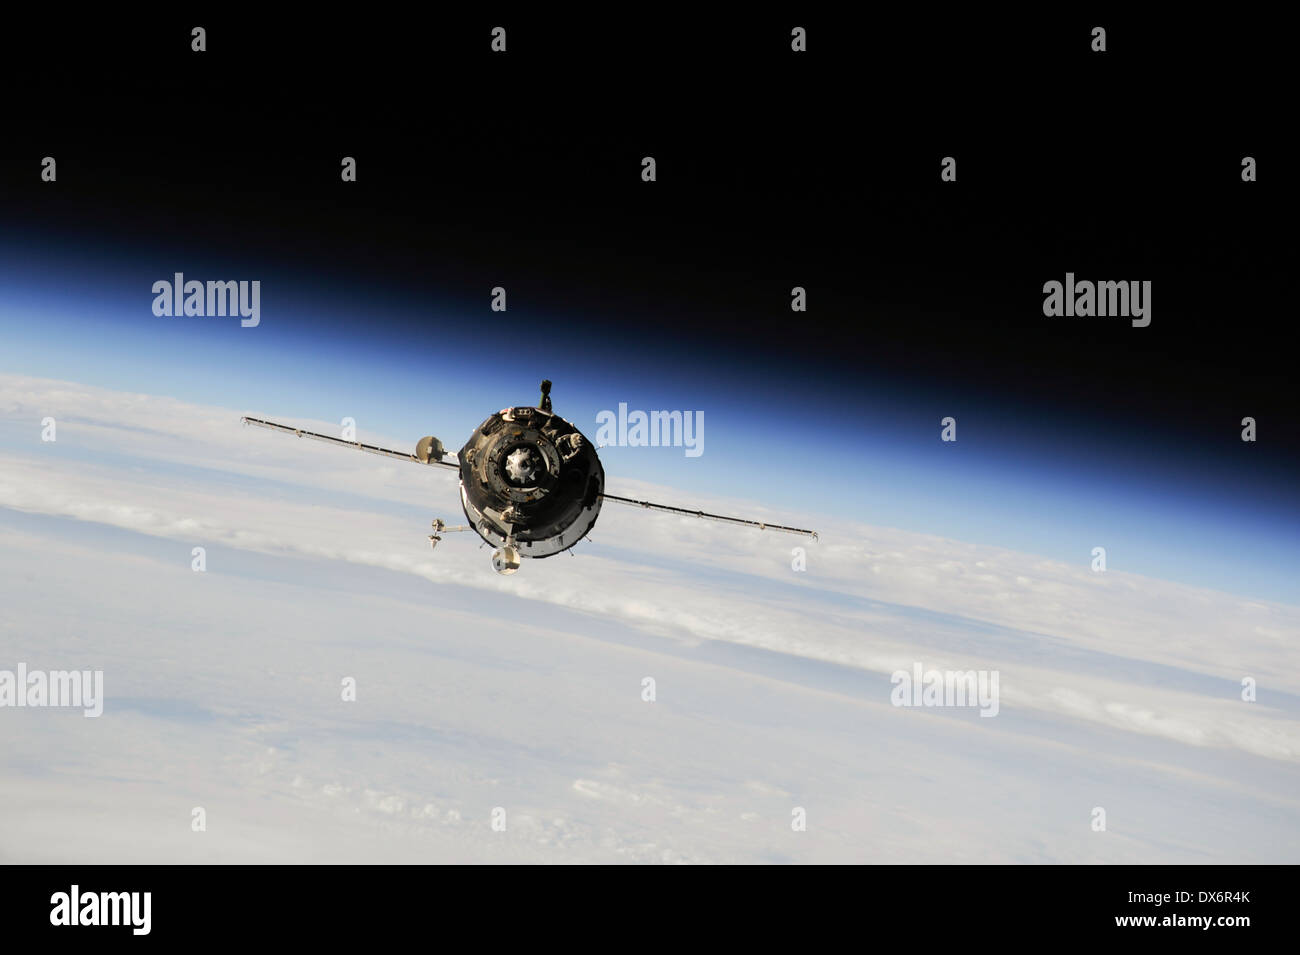 The Soyuz TMA-10M spacecraft approaches the International Space Station 10:45 p.m. EDT on Sept. 25, 2013. - Stock Image